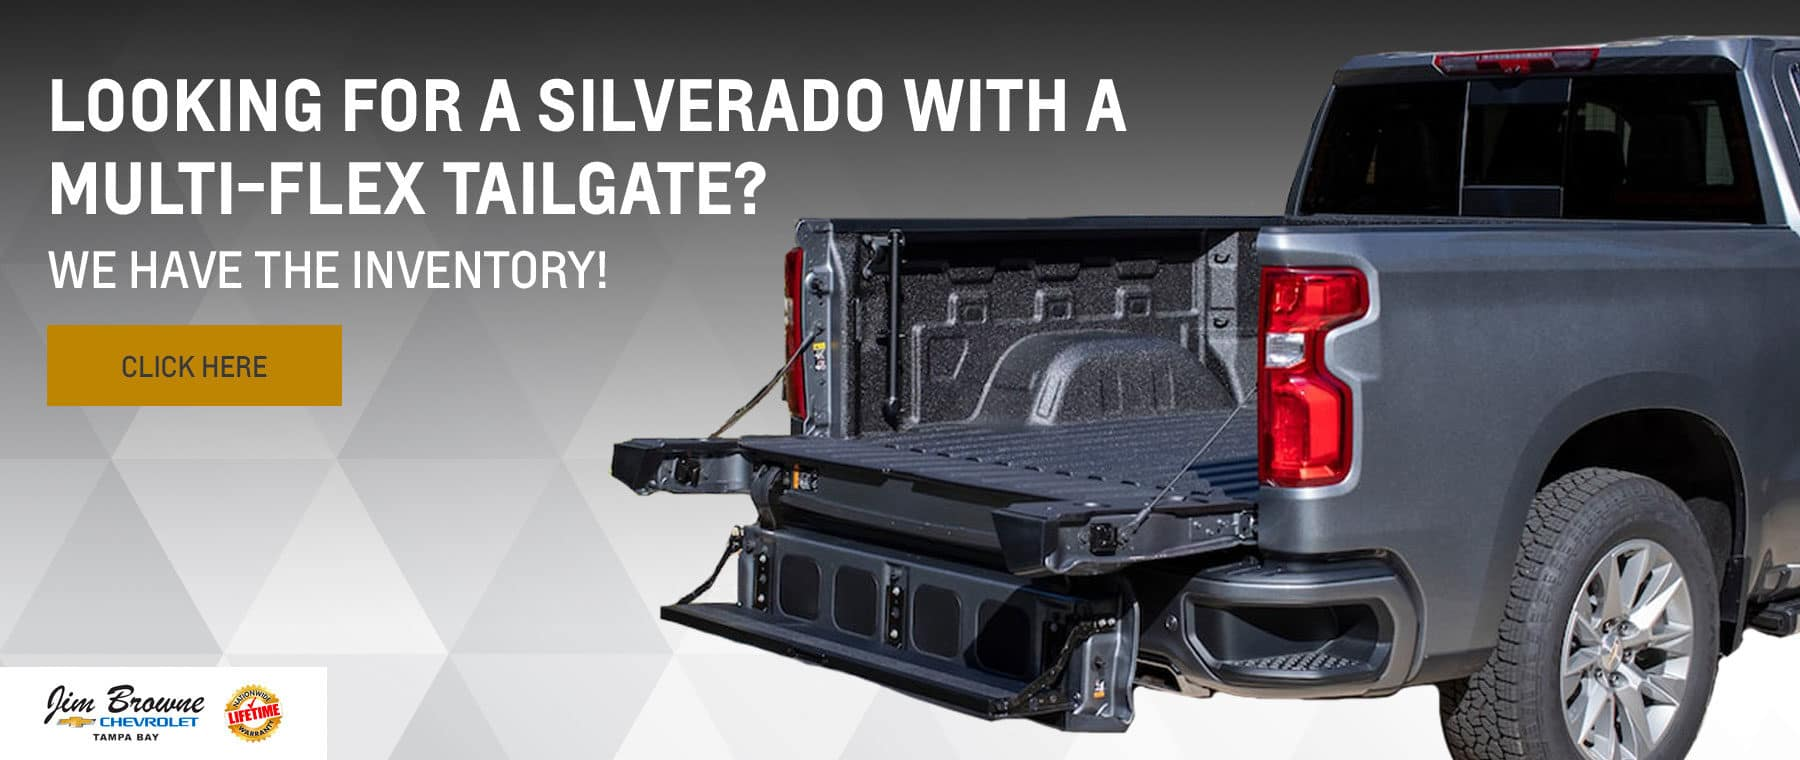 Looking for a Silverado with a Multi-Flex Tailgate?